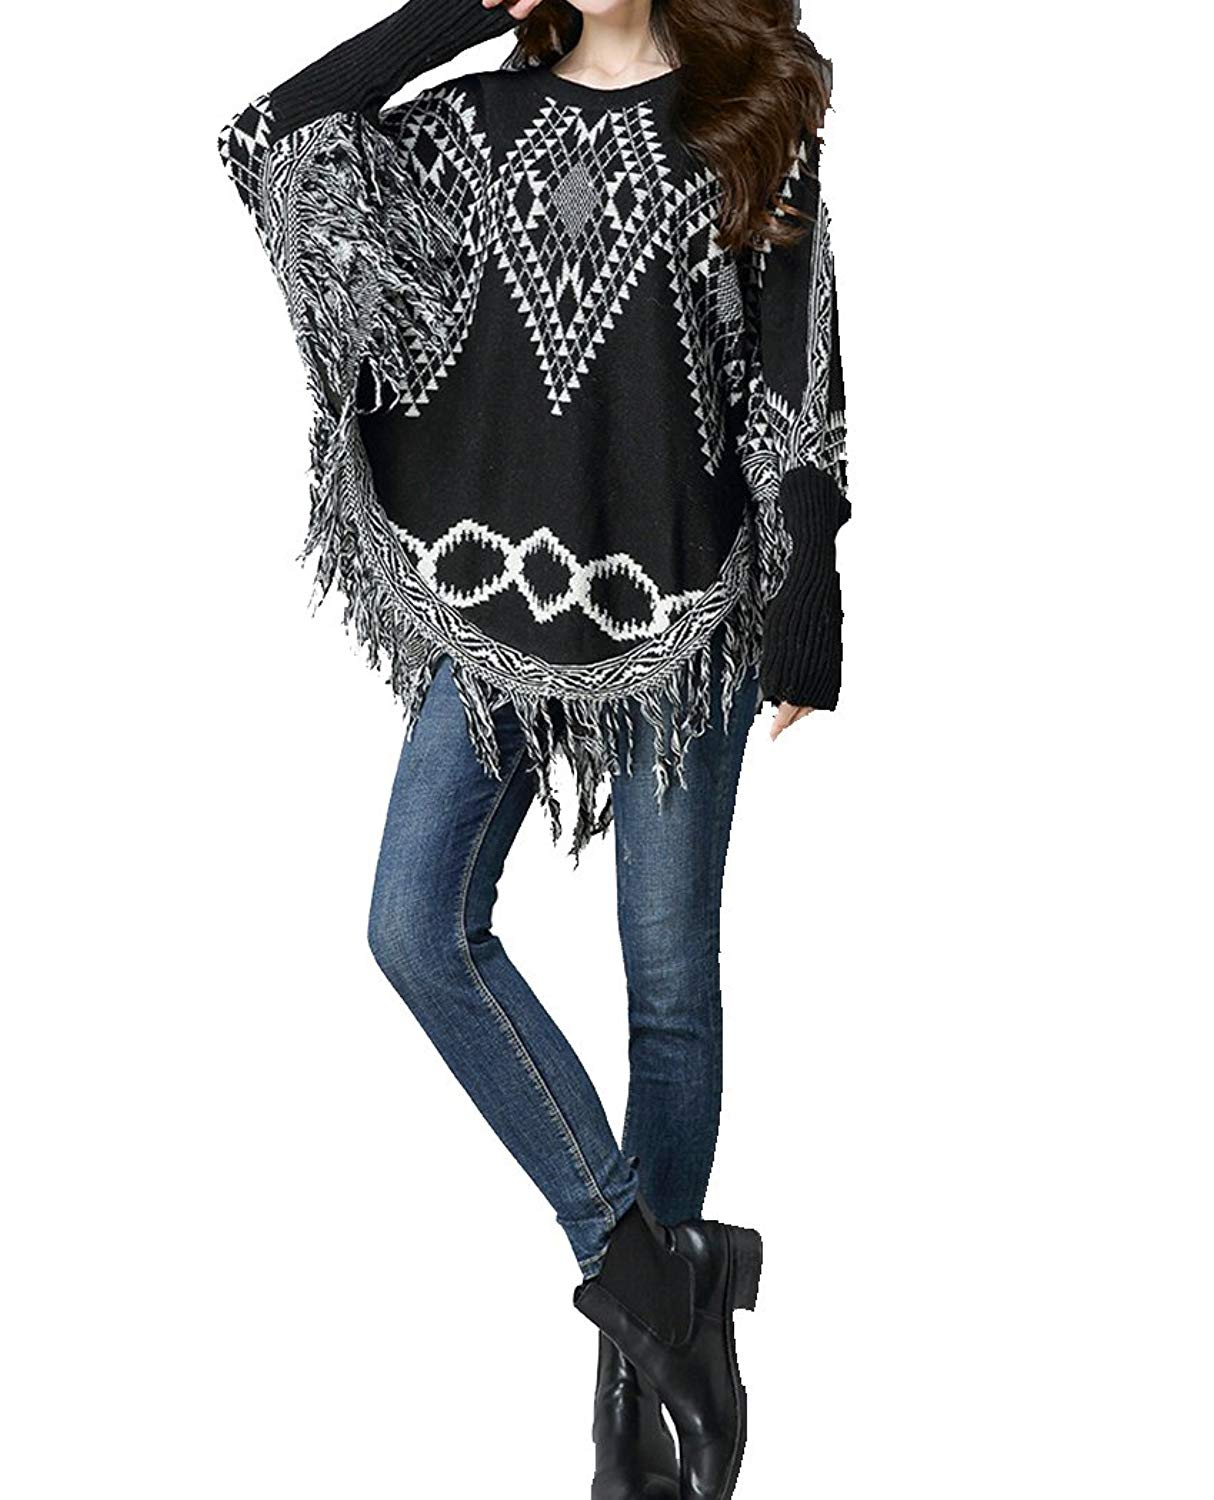 5359623c5 Get Quotations · FOURSTEEDS Womens Plus Size Knitted Pullover Ponchos Capes  Shawls Sweater Coat